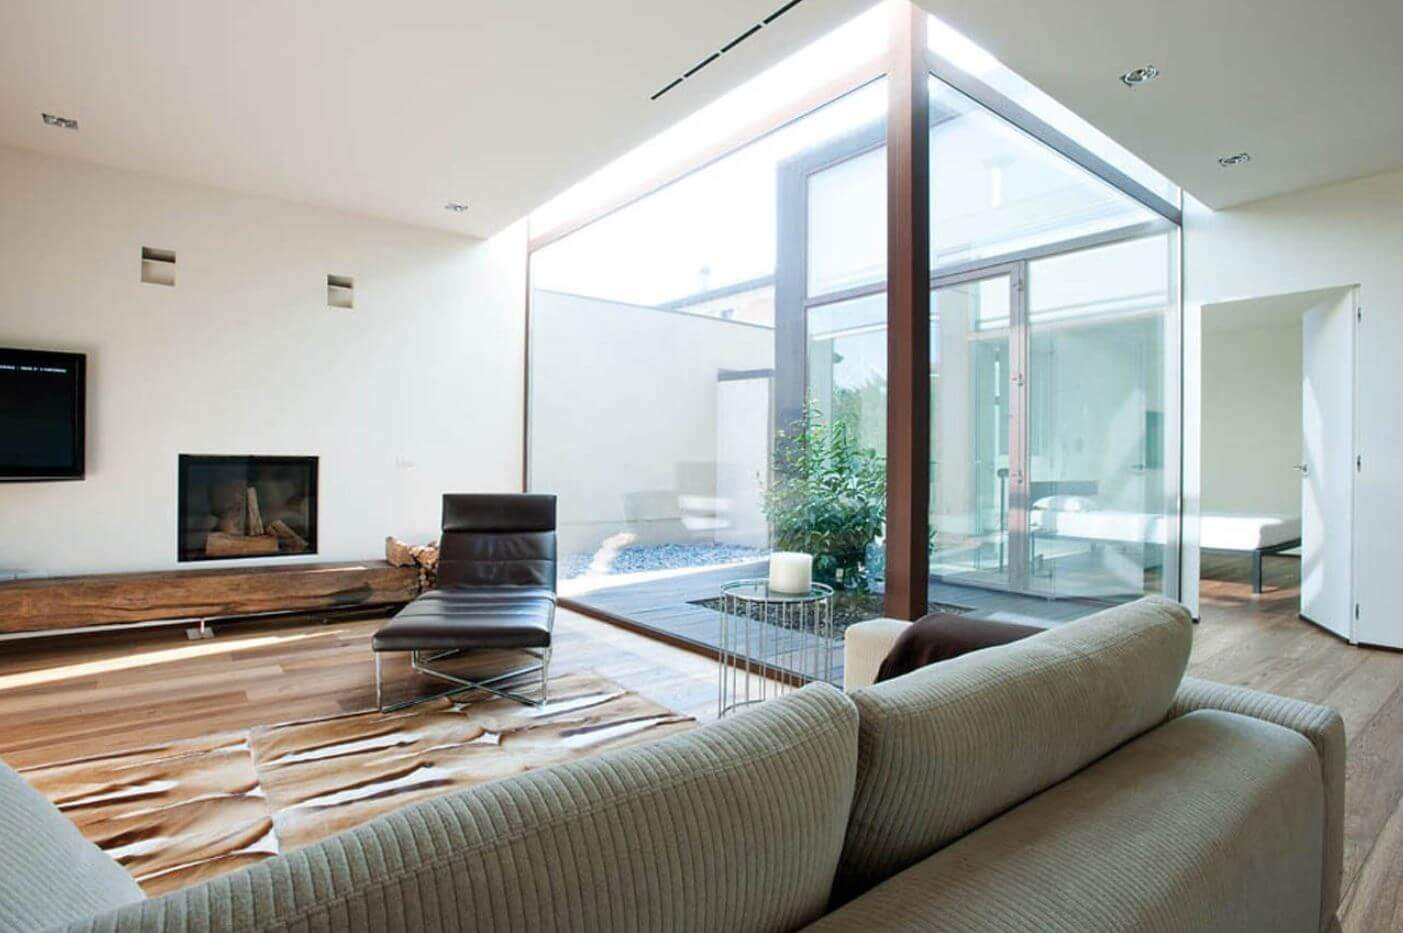 Small house with skylight